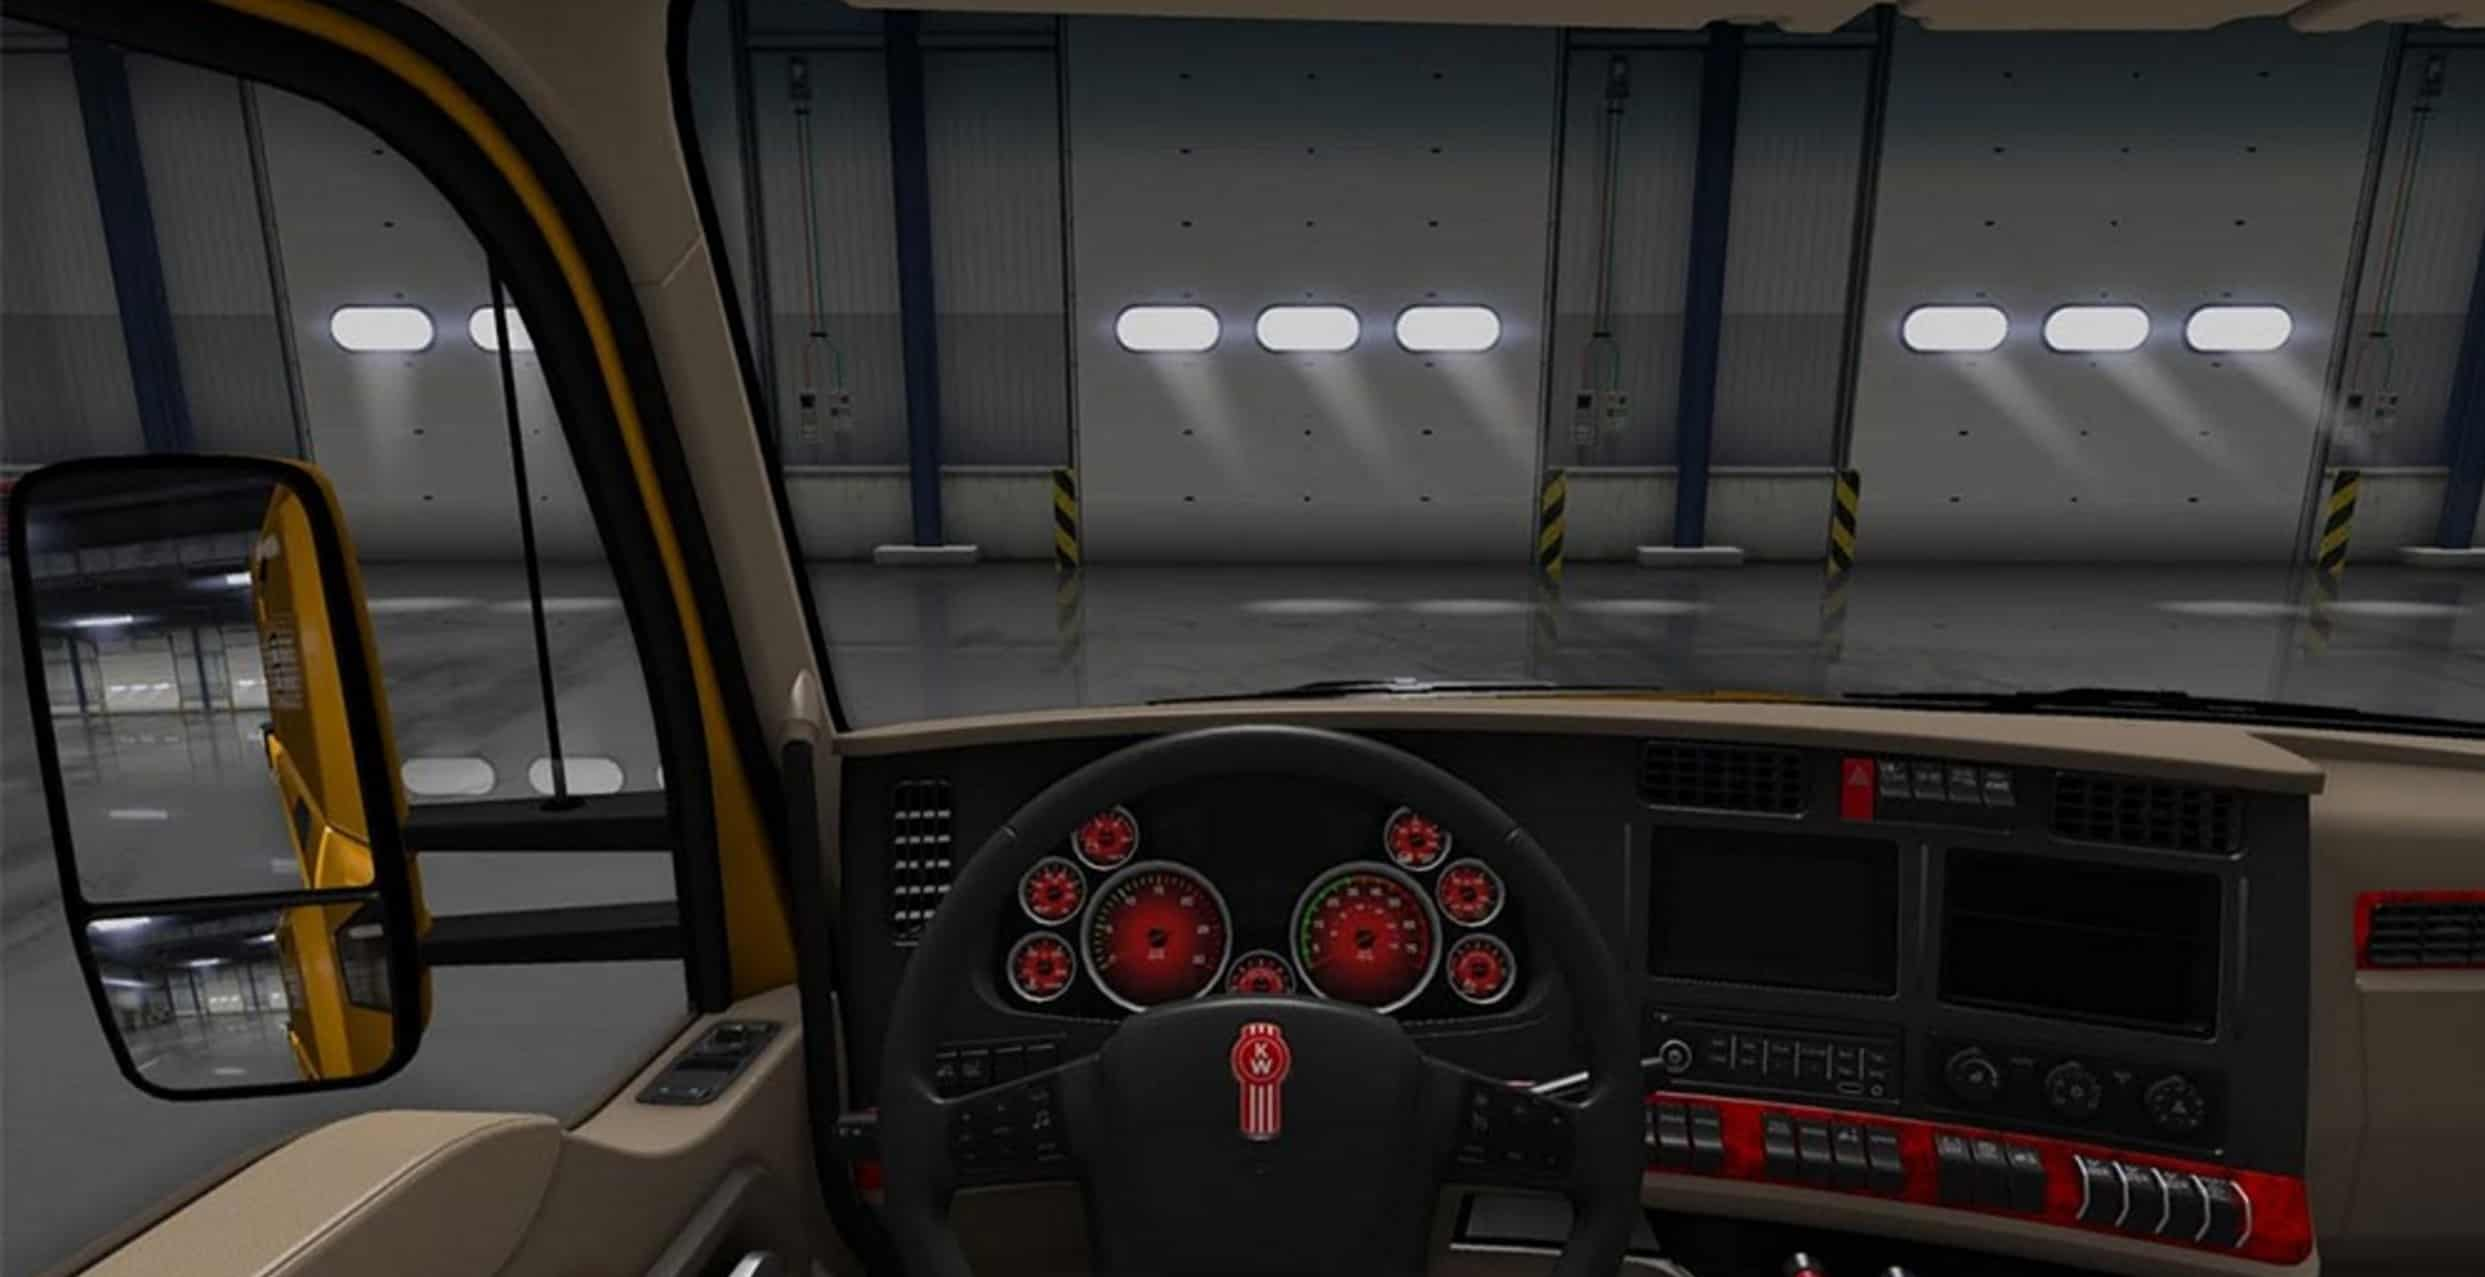 Kenworth t680 Dashboard red Mod 2 kenworth t680 dashboard red mod american truck simulator mod fuse box in kenworth t680 at honlapkeszites.co